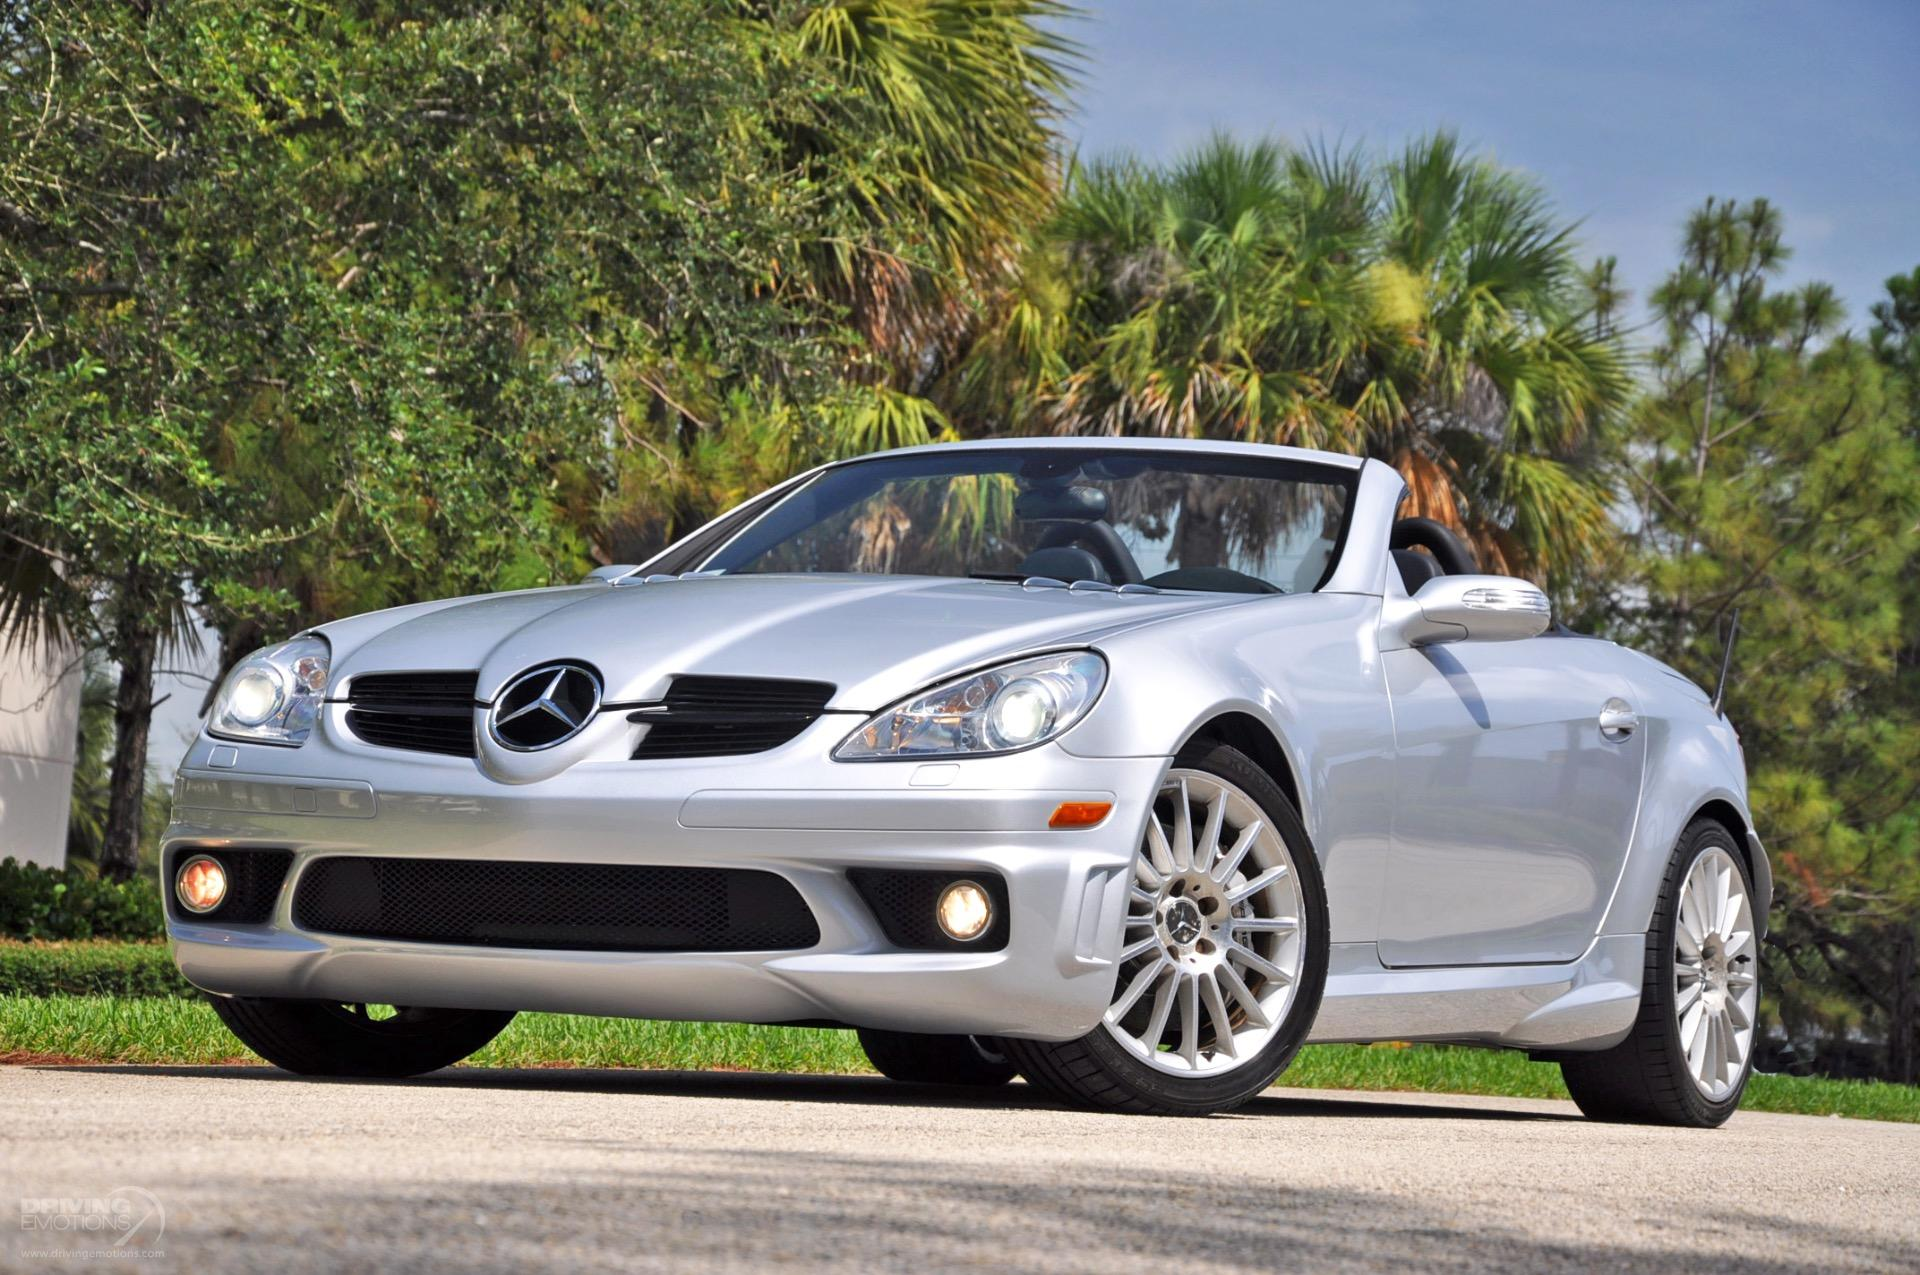 2005 mercedes benz slk55 amg slk 55 amg stock 5967 for. Black Bedroom Furniture Sets. Home Design Ideas